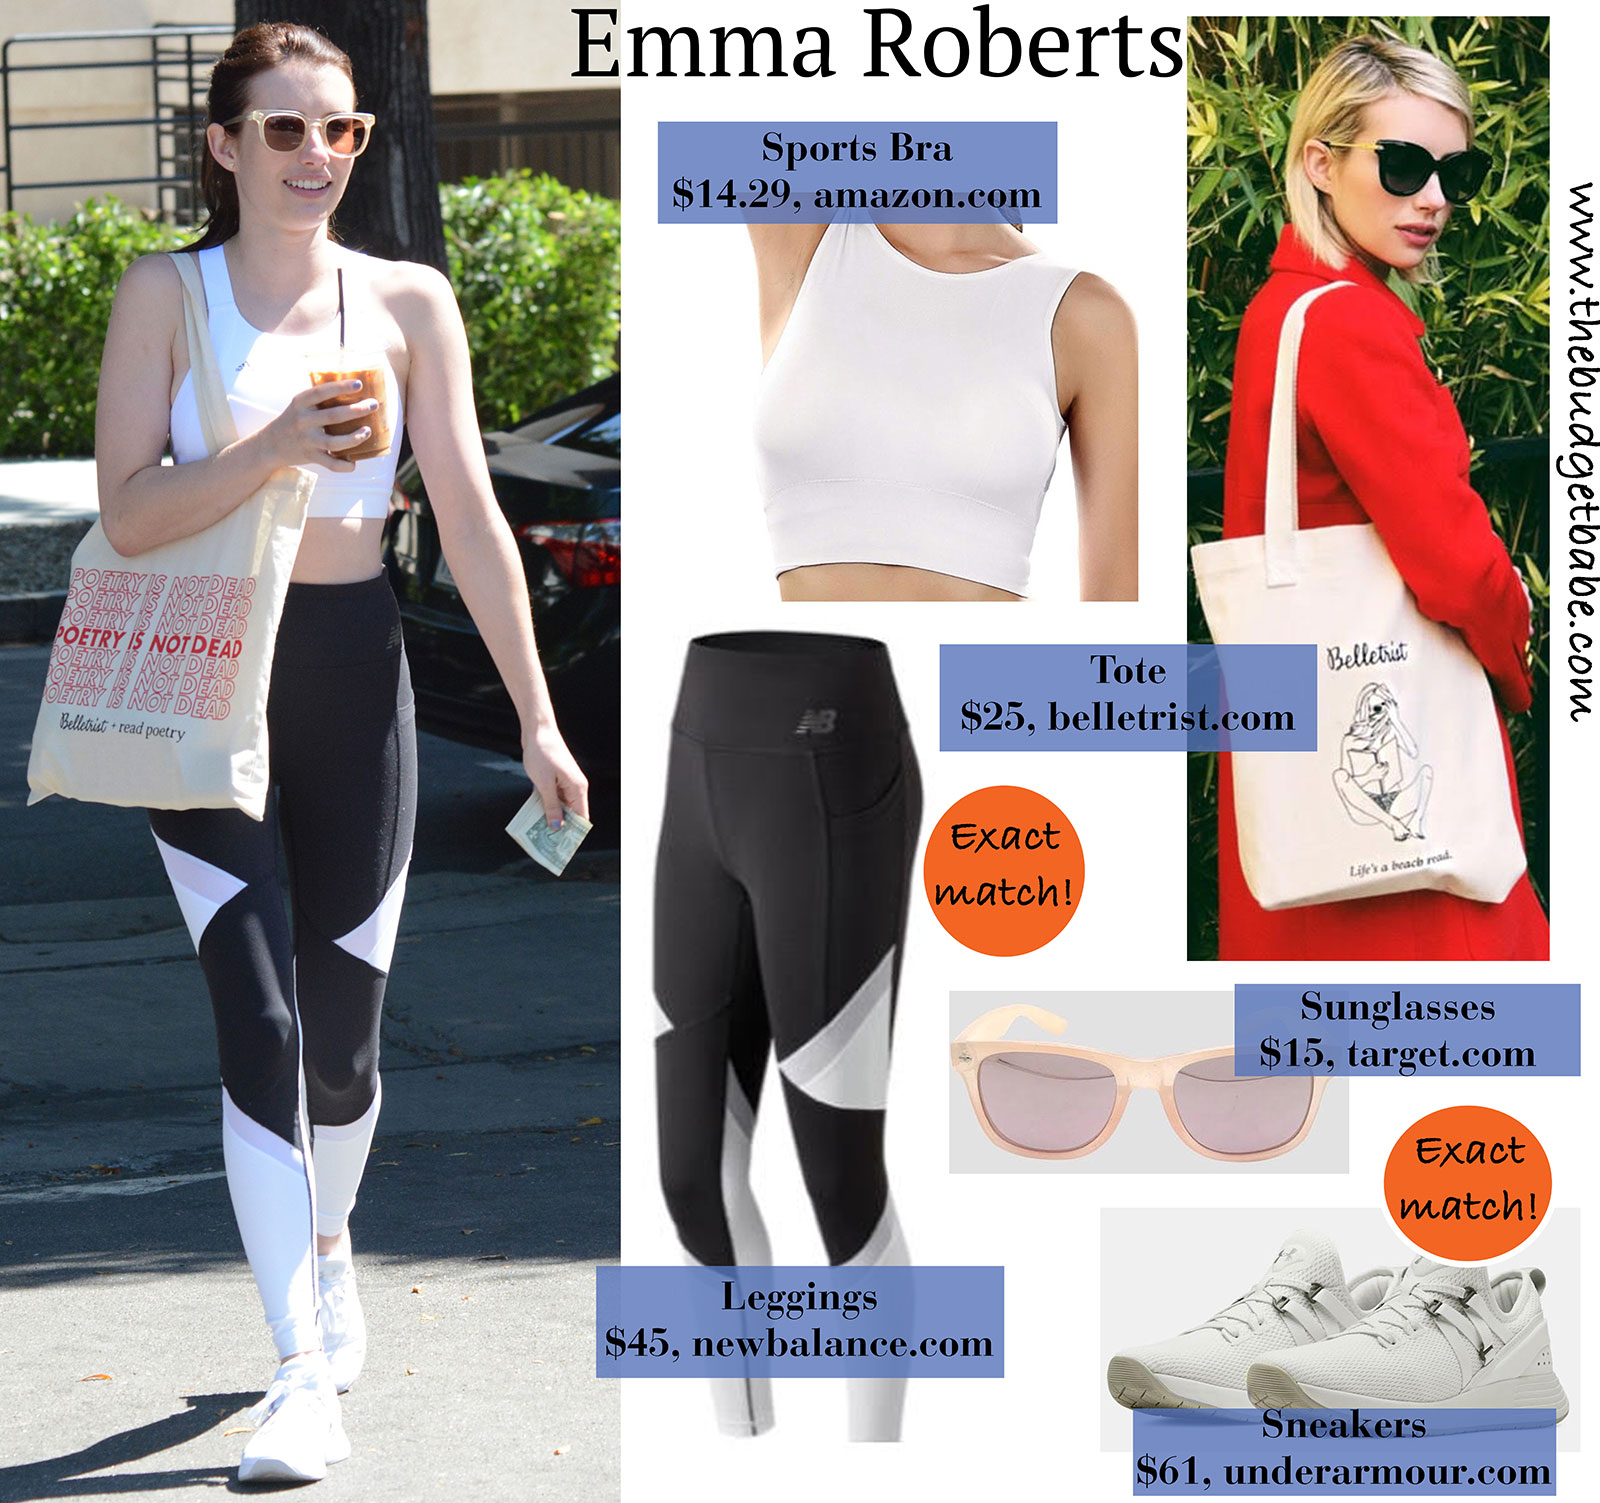 d150159b624 Emma Roberts - The Budget Babe | Affordable Fashion & Style Blog